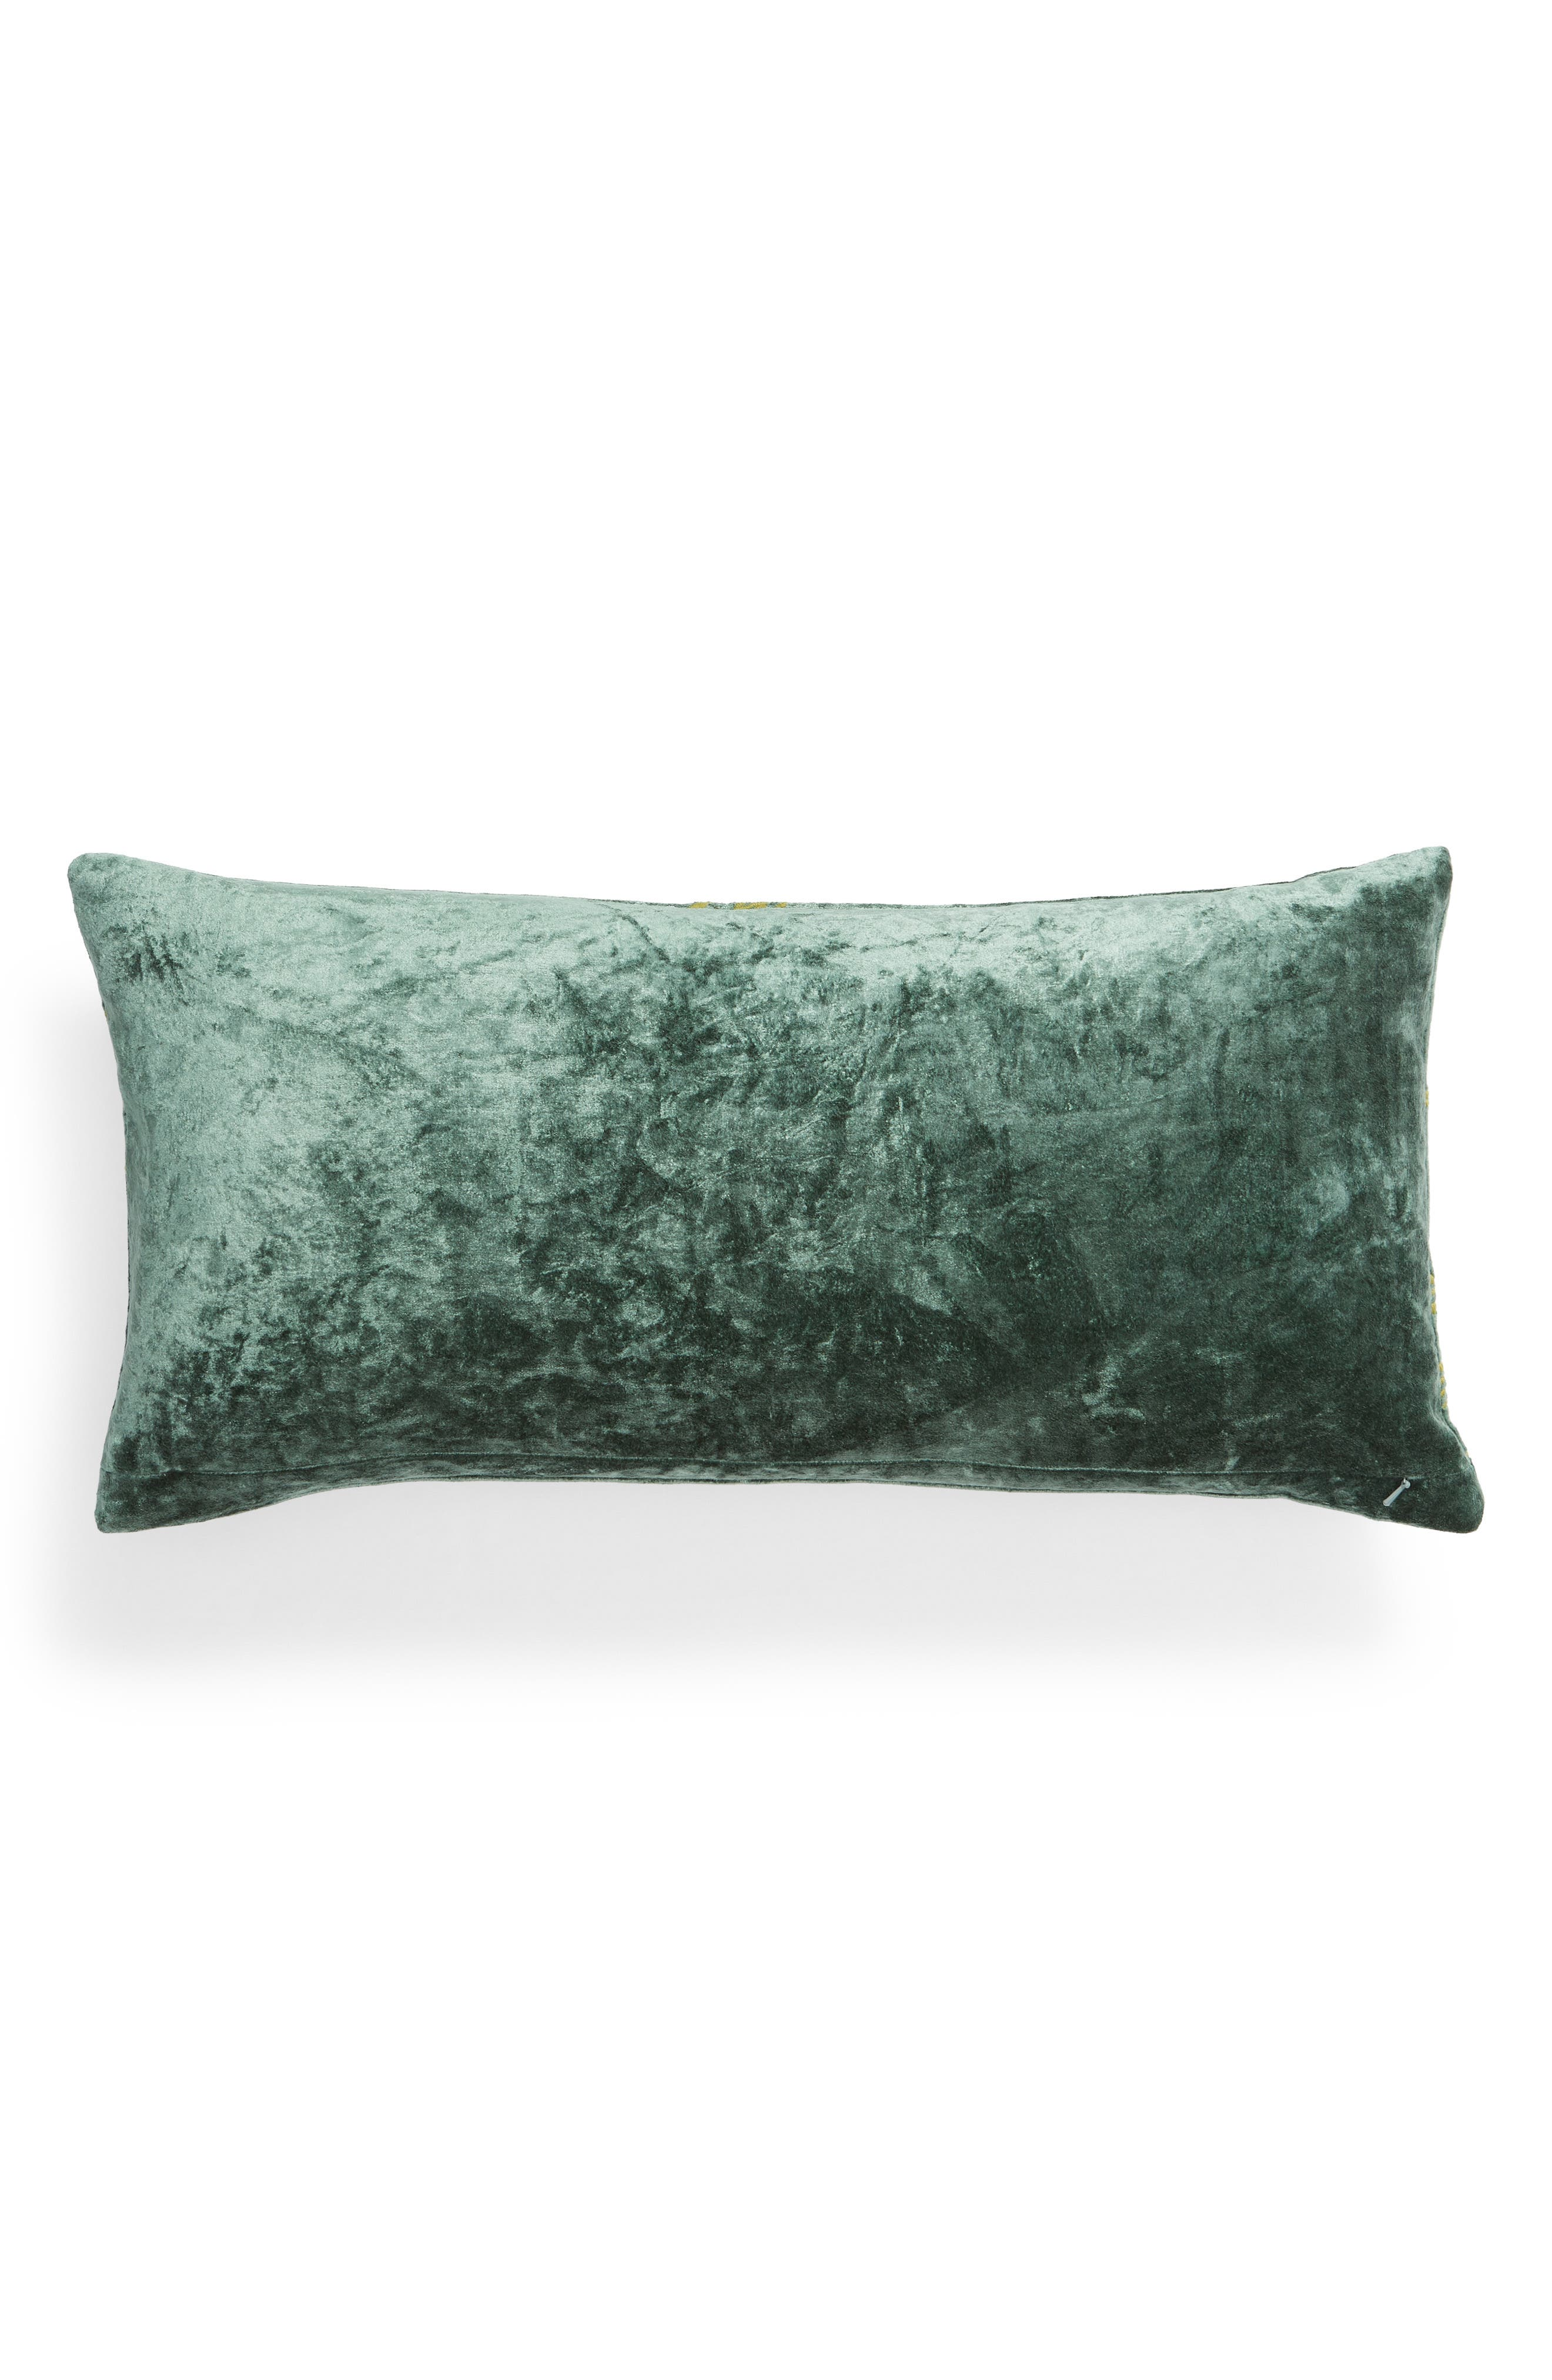 TREASURE & BOND, Stonewashed Embroidered Velveteen Accent Pillow, Alternate thumbnail 2, color, GREEN SHORE MULTI